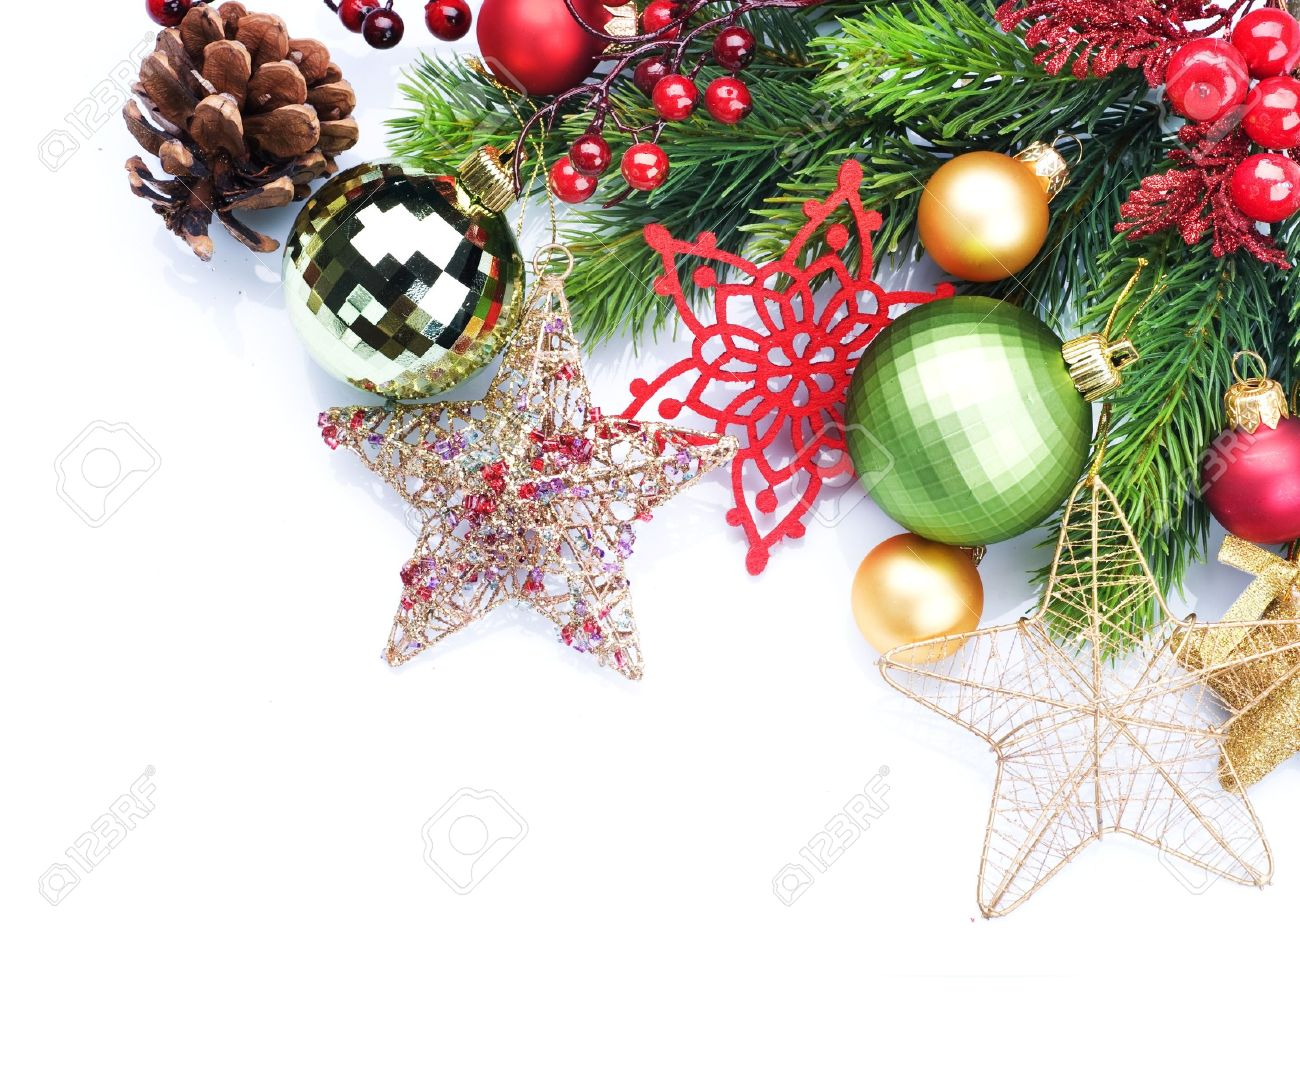 Christmas Decoration Border Design Stock Photo, Picture And ...